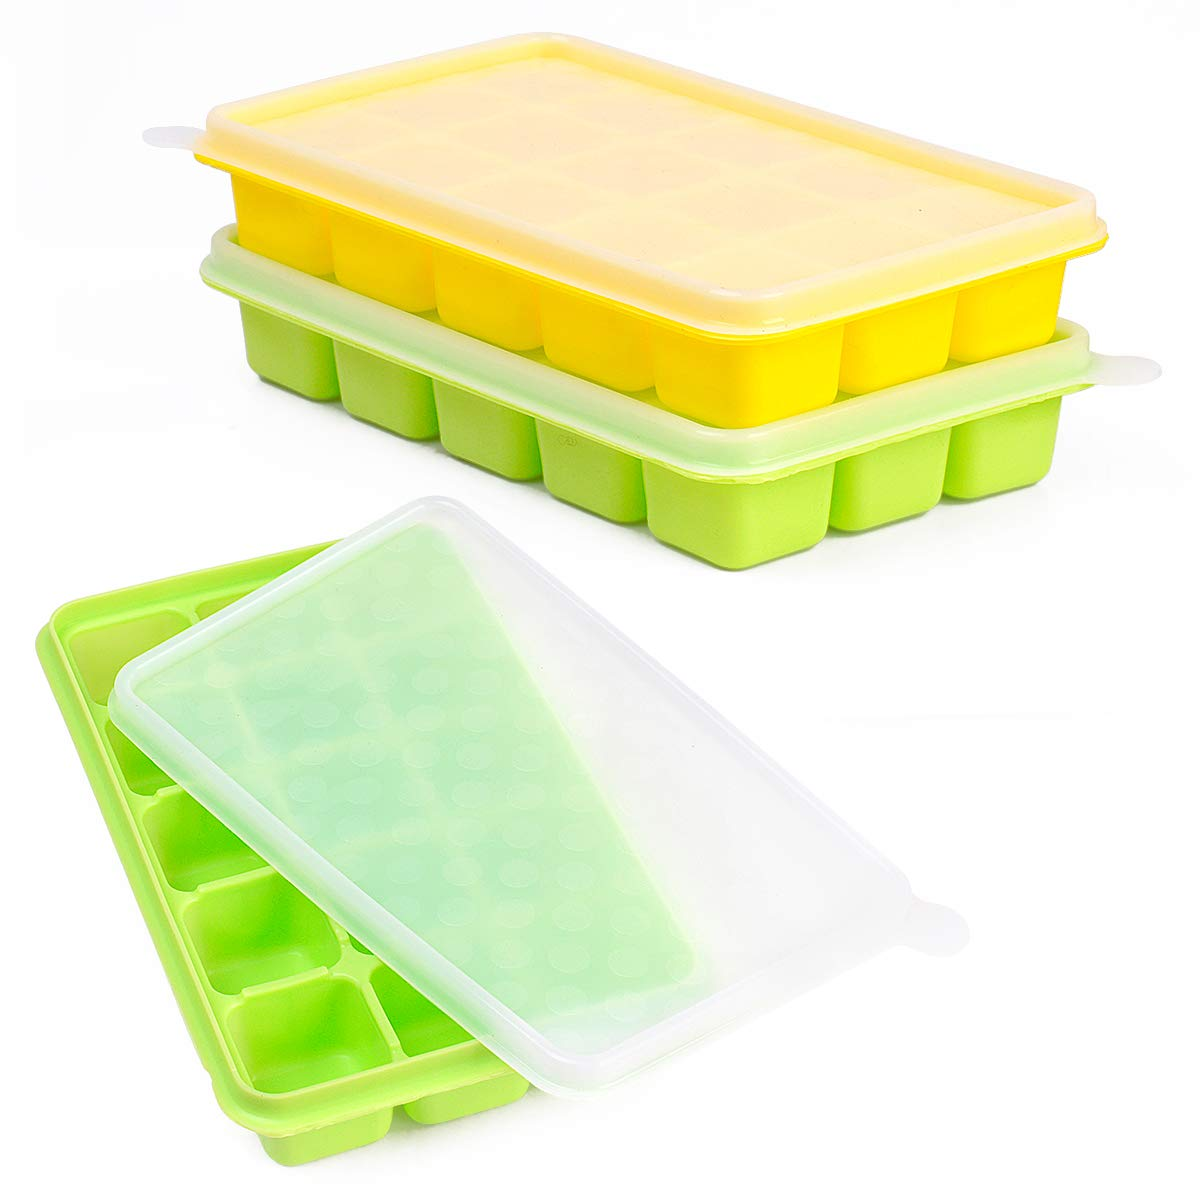 Ice Cube Trays CASELAND Easy Release 2 Pack Silicone 15 Ice Trays with Spill-Resistant Removable Lid Stackable Durable and Dishwasher Safe FDA Certified & BPA Free